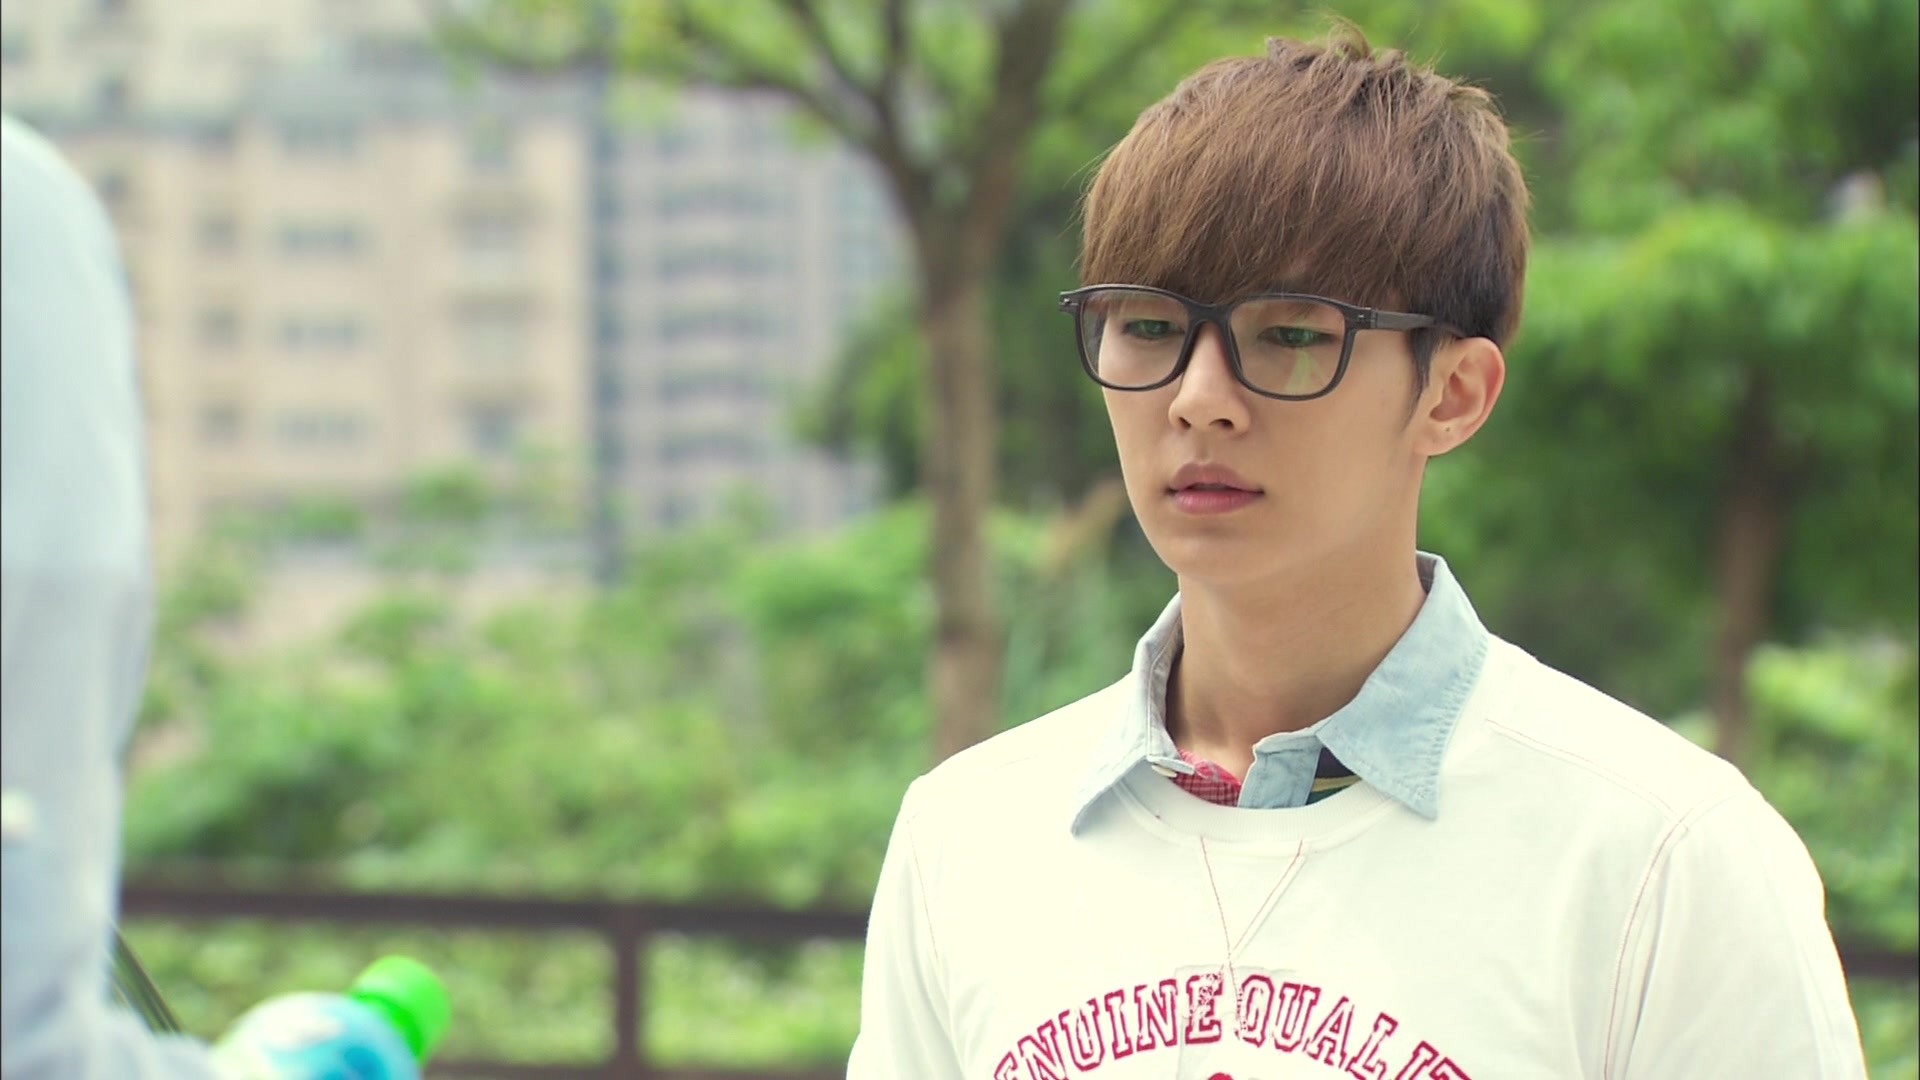 Autumn s concerto wallpaper - Fall In Love With Me Episode 4 Watch Full Episodes Free Taiwan Tv Shows Rakuten Viki